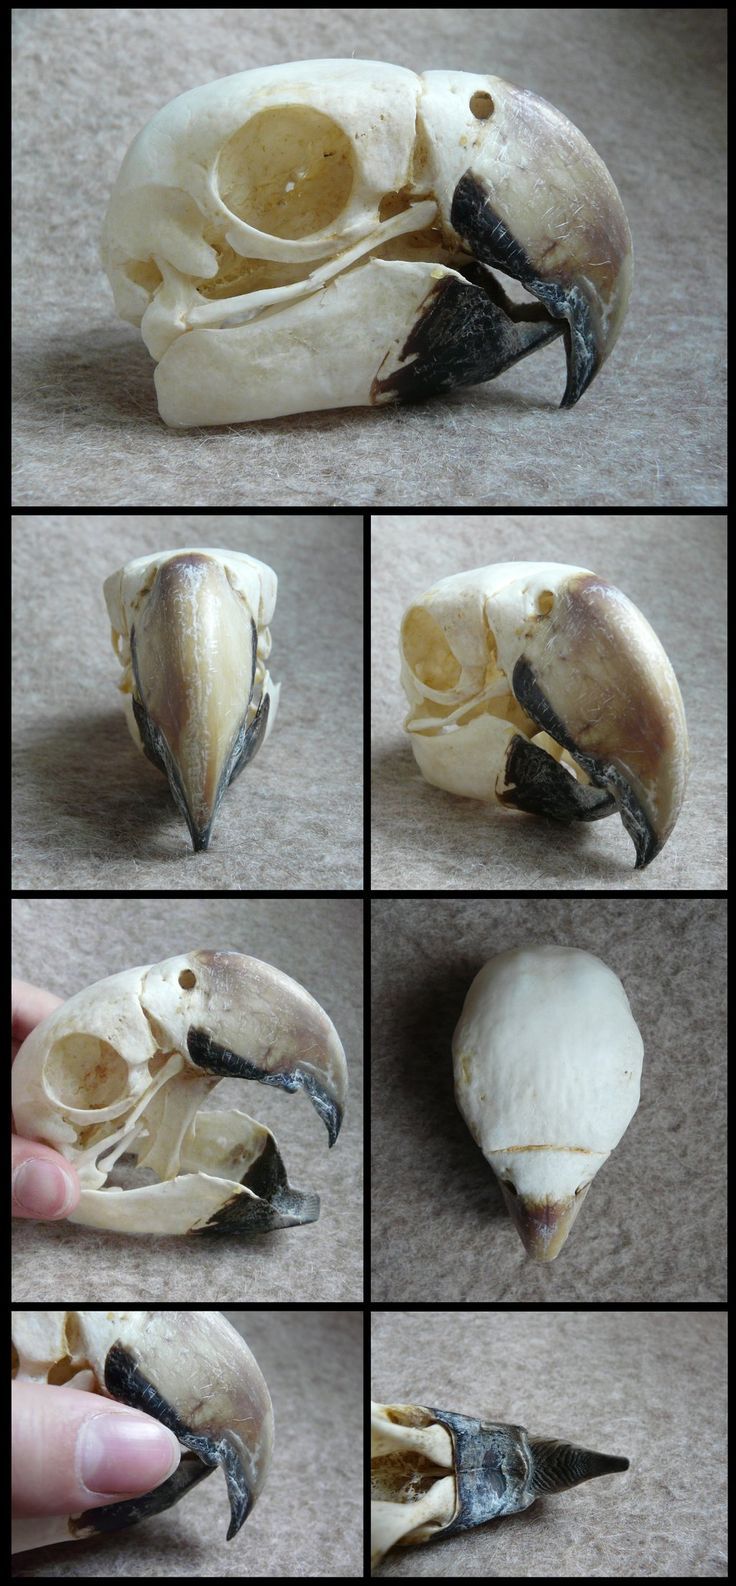 Macaw Skull by CabinetCuriosities on DeviantArt